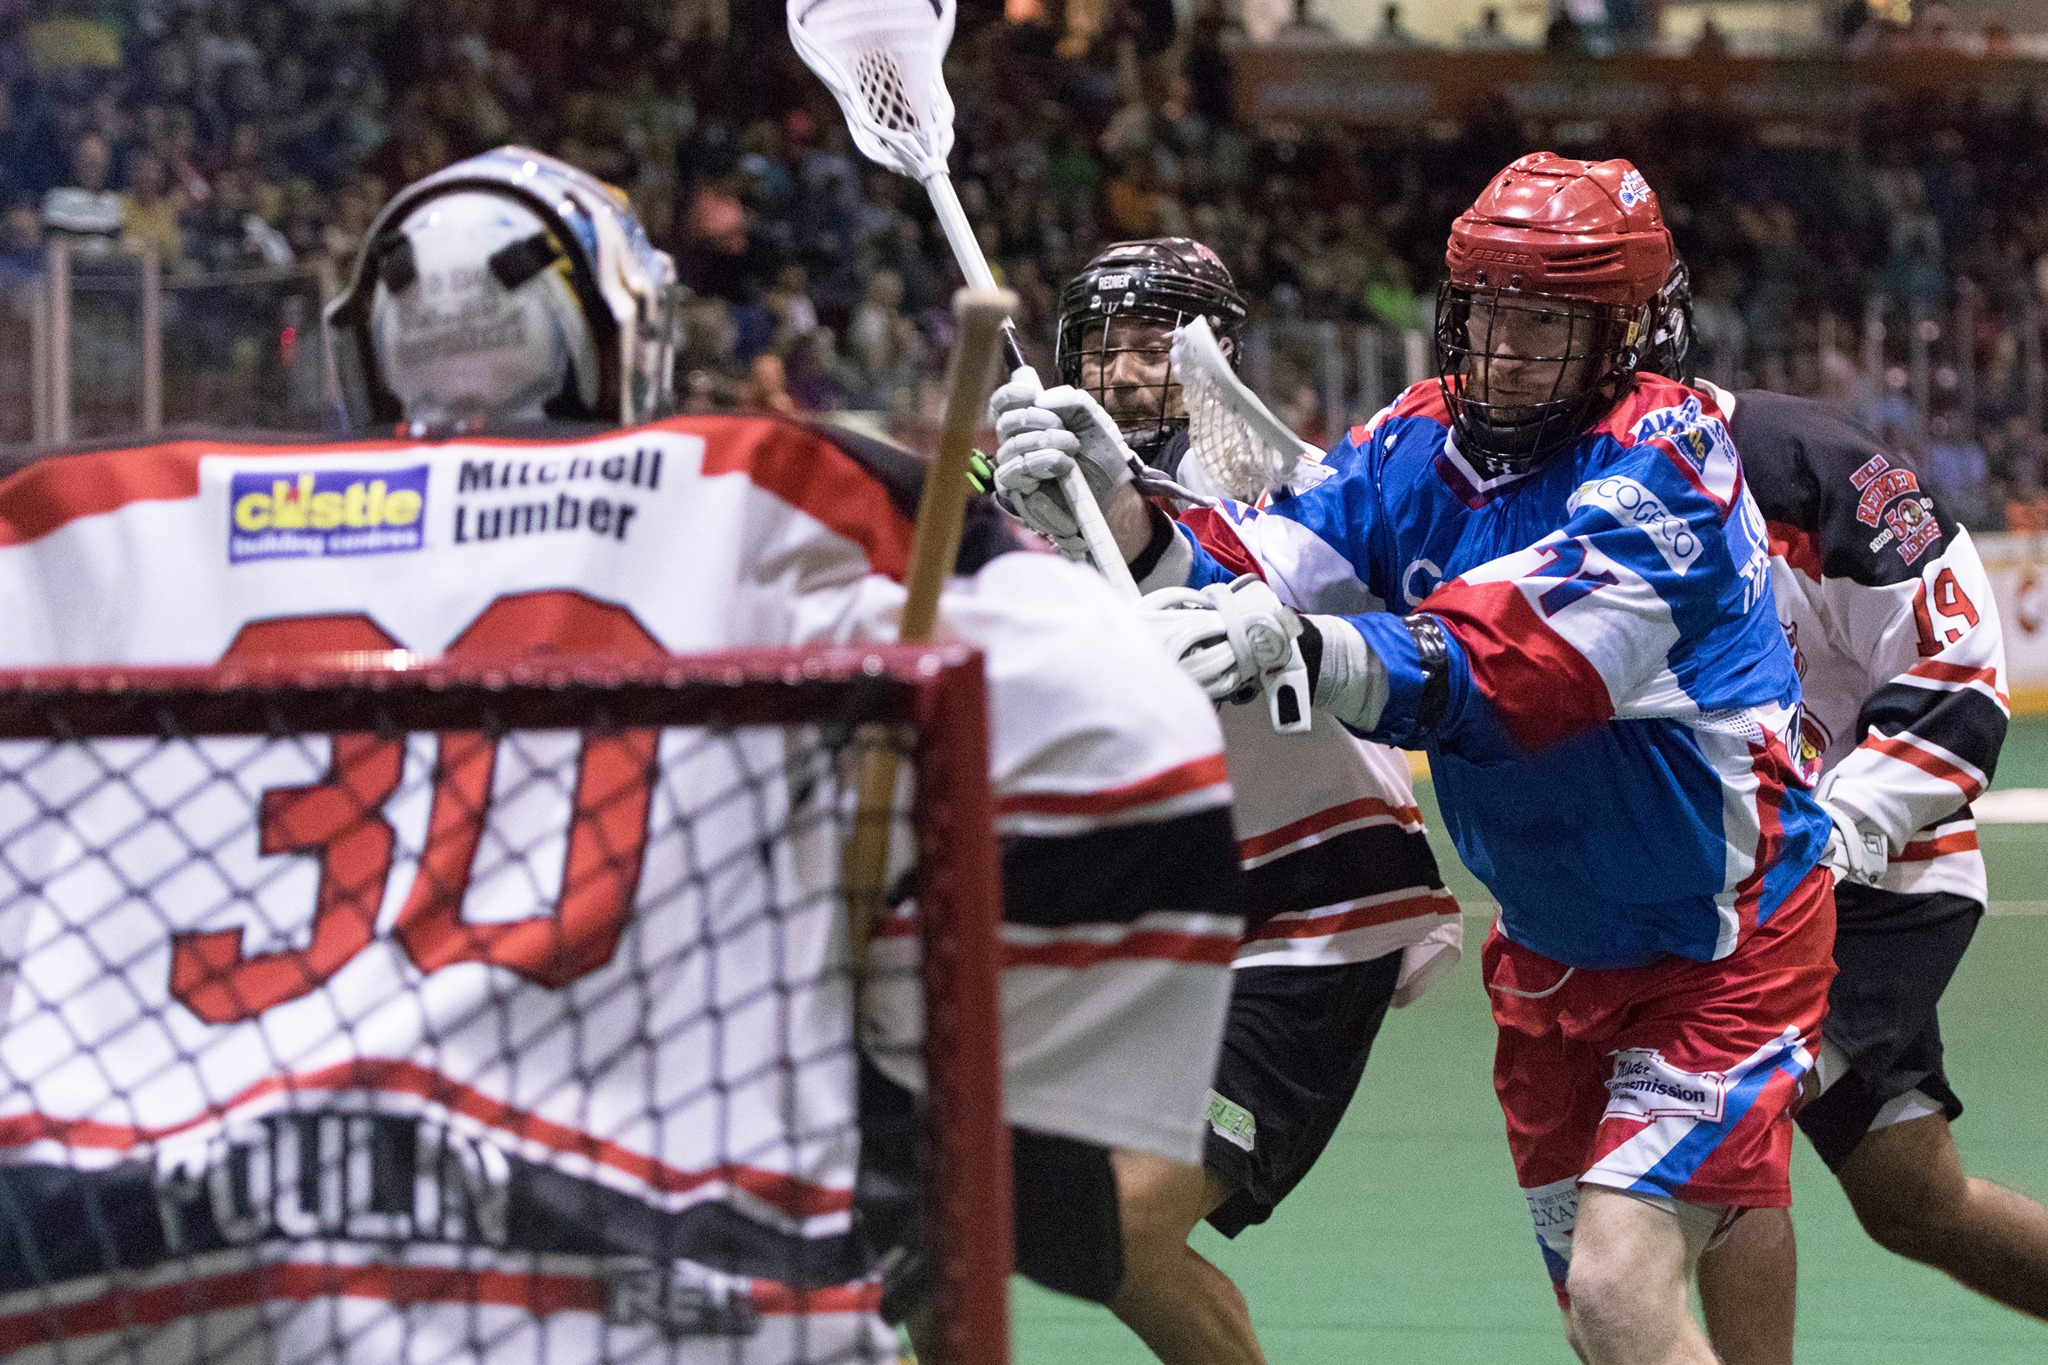 Curtis Dickson of the Peterborough Lakers takes a shot on Mike Poulin of the Brooklin Redmen on July 13, 2017 at the Peterborough Memorial Centre. (Photo credit: Ryan Nolan)